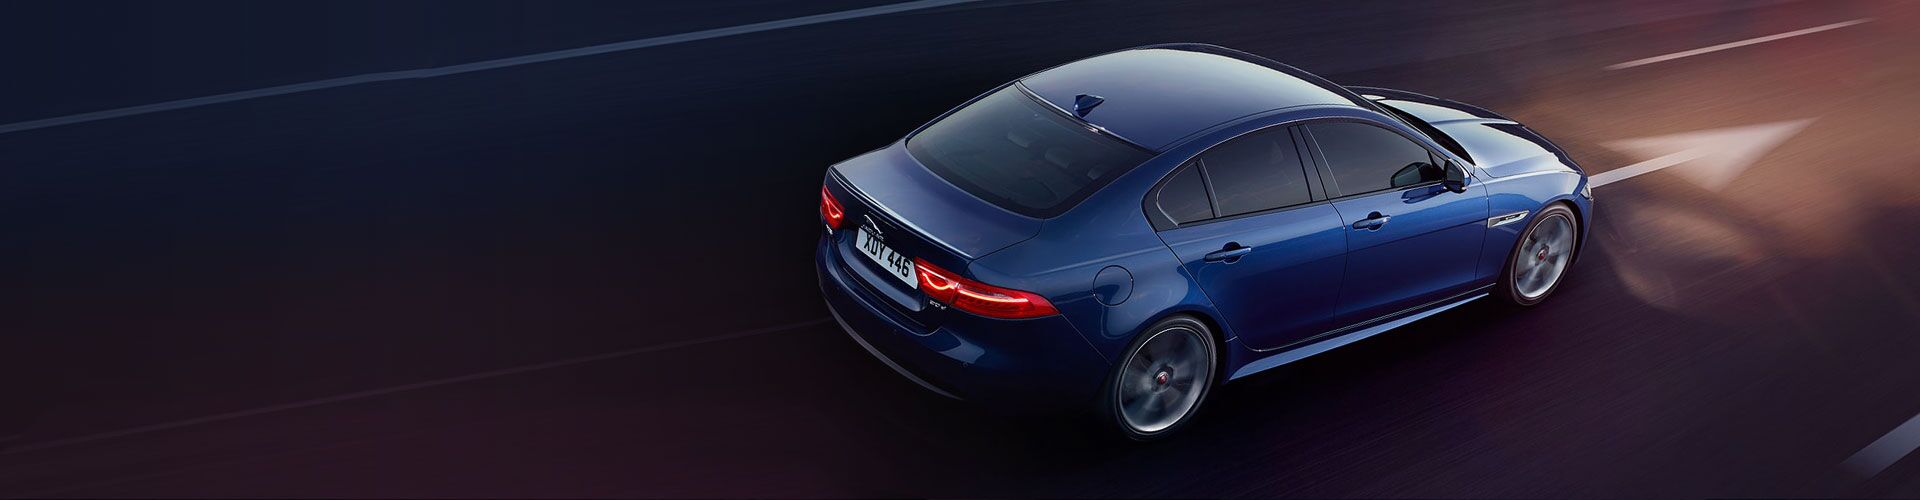 New Jaguar XE at Jaguar Ventura